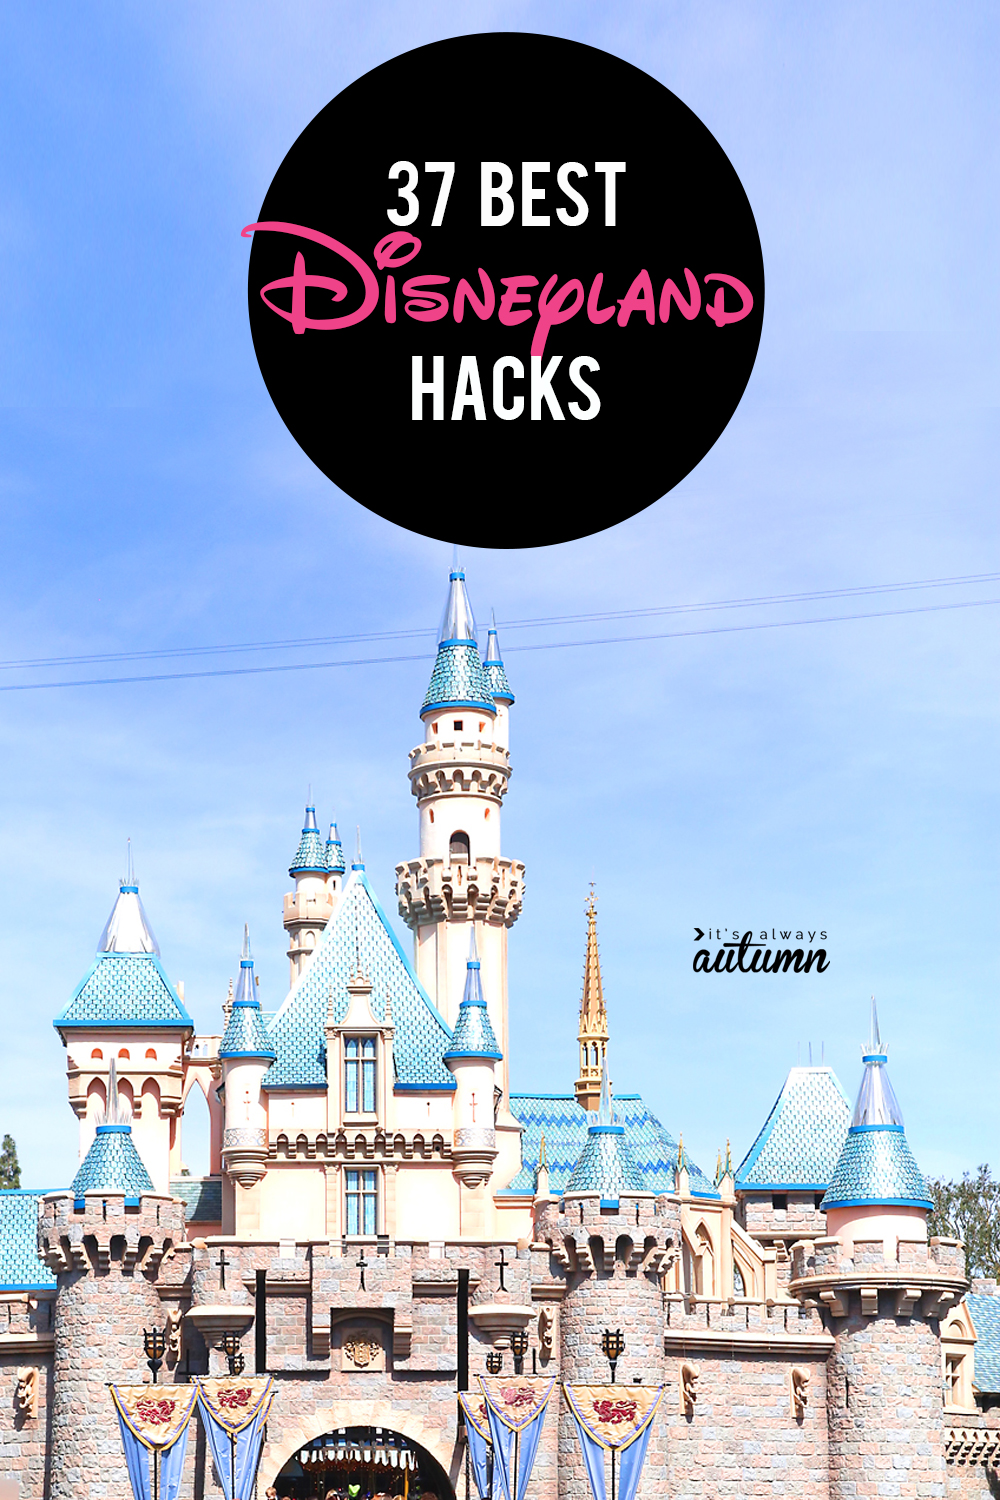 37 smart Disneyland hacks so you can plan your best trip yet! Disney tips and tricks.